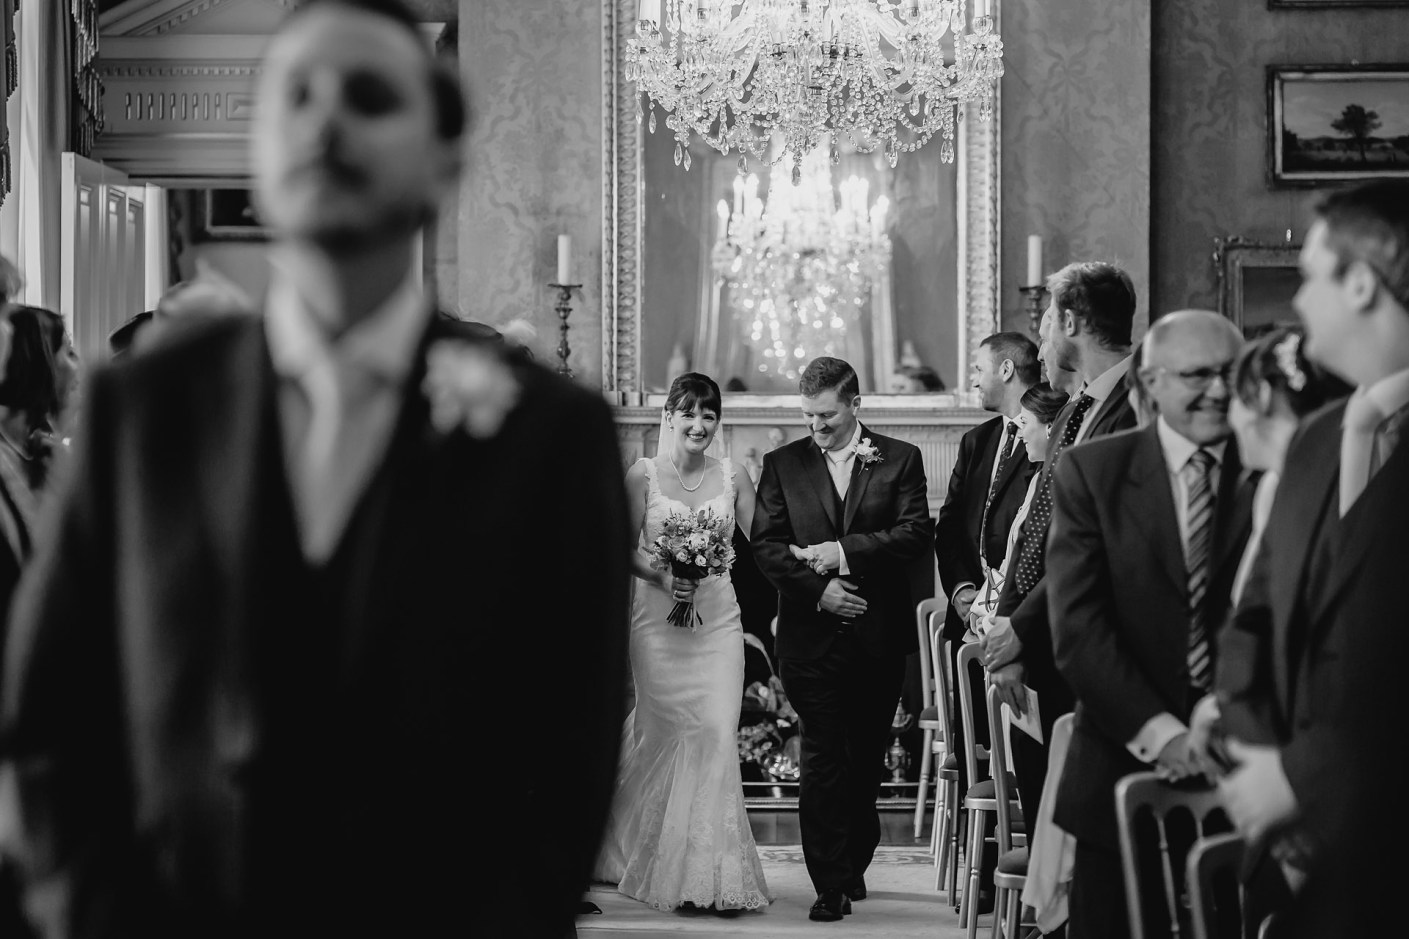 here ceomes the bride - photo down the aisle before the service in cheshire